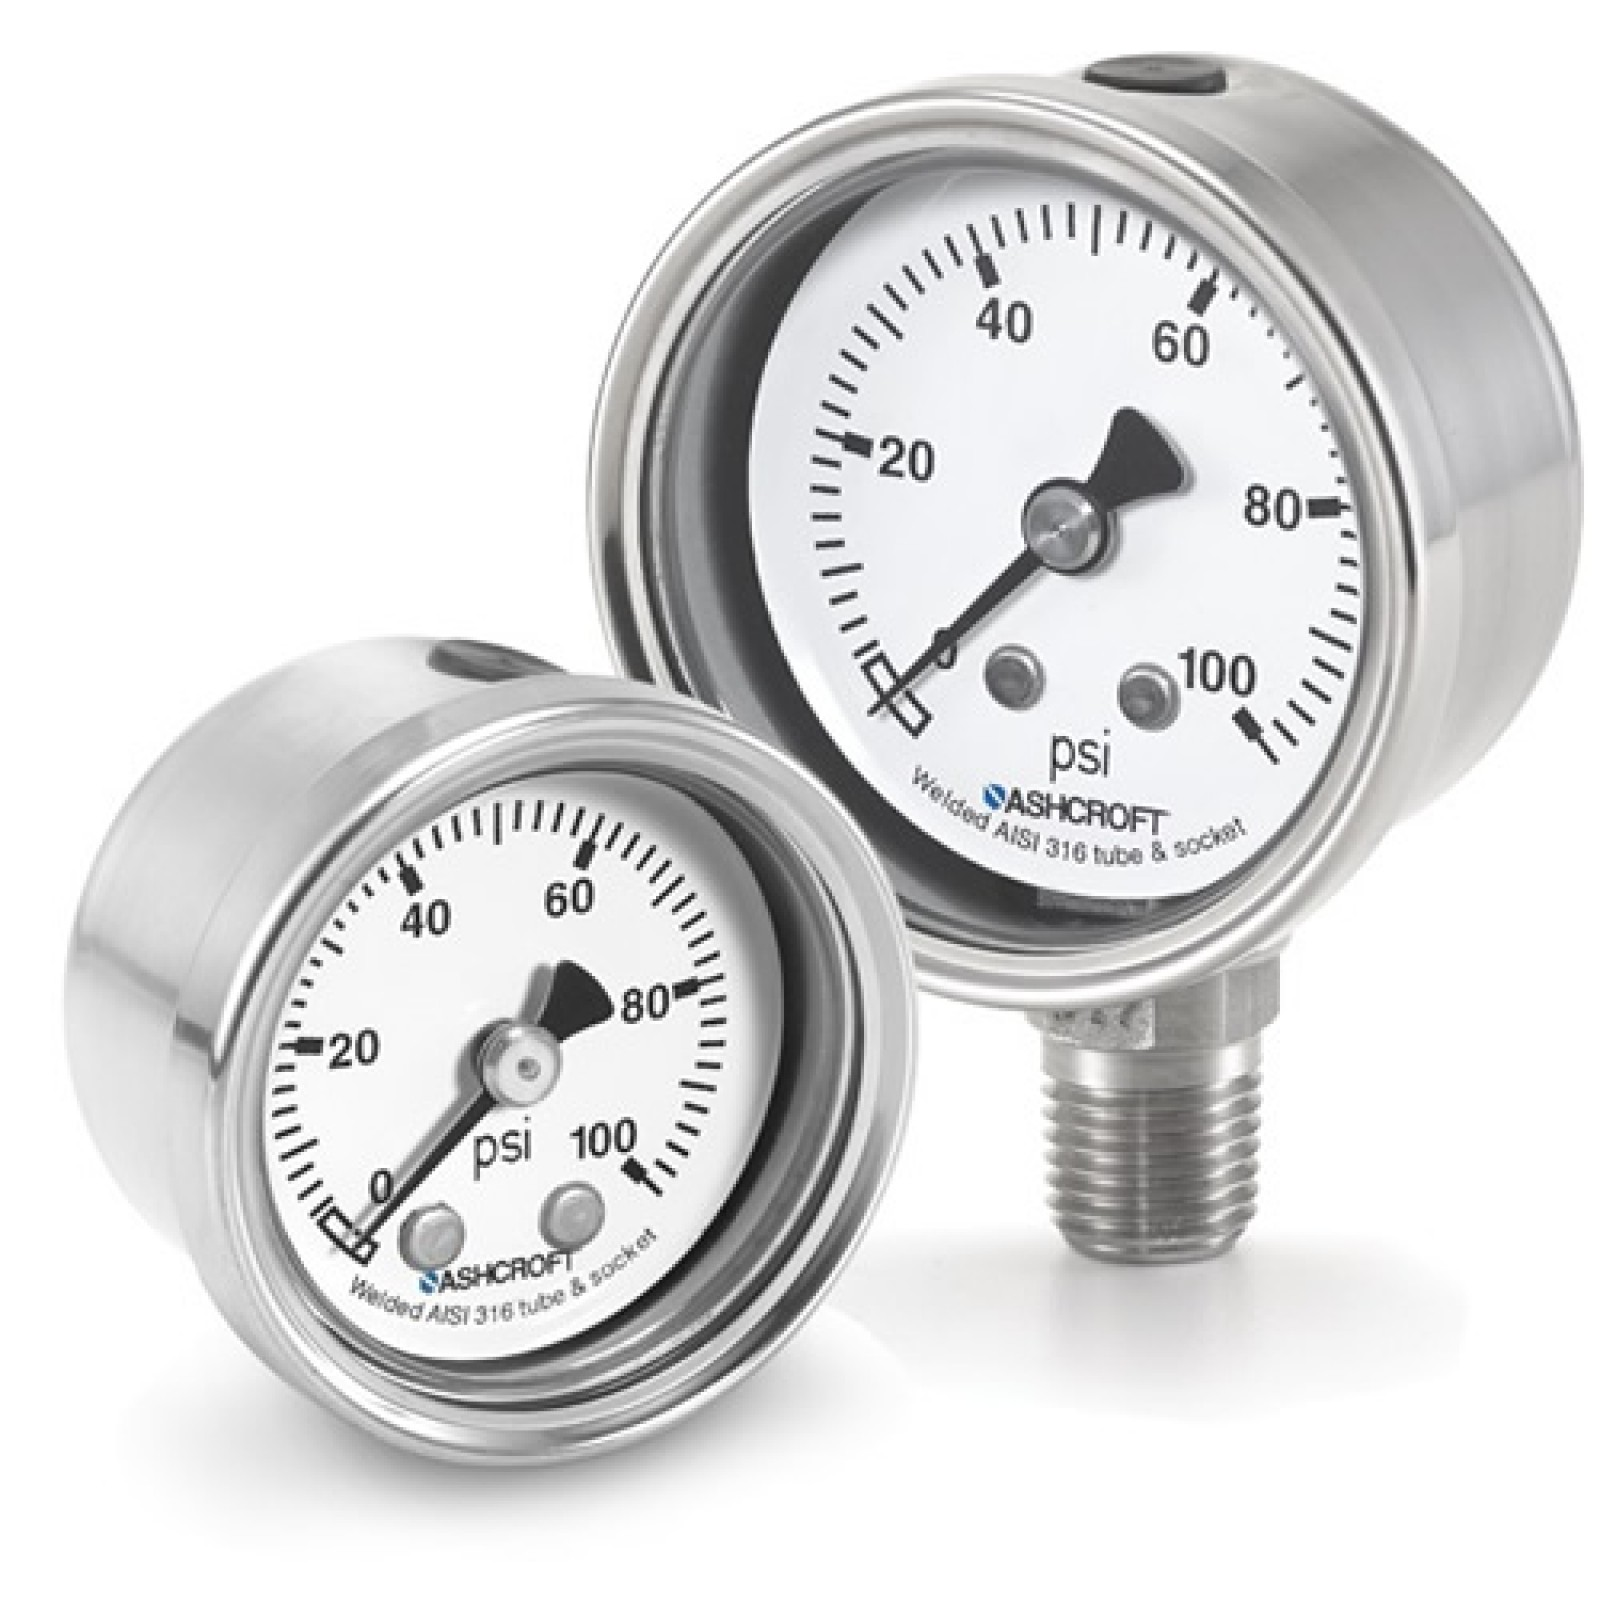 "10 1008S 02L XLL V/150#/KP - Pressure Gauge, 100mm stainless 1/4"" NPT Lower conn & Case, Plus Performance, 30""hg/150 psi"